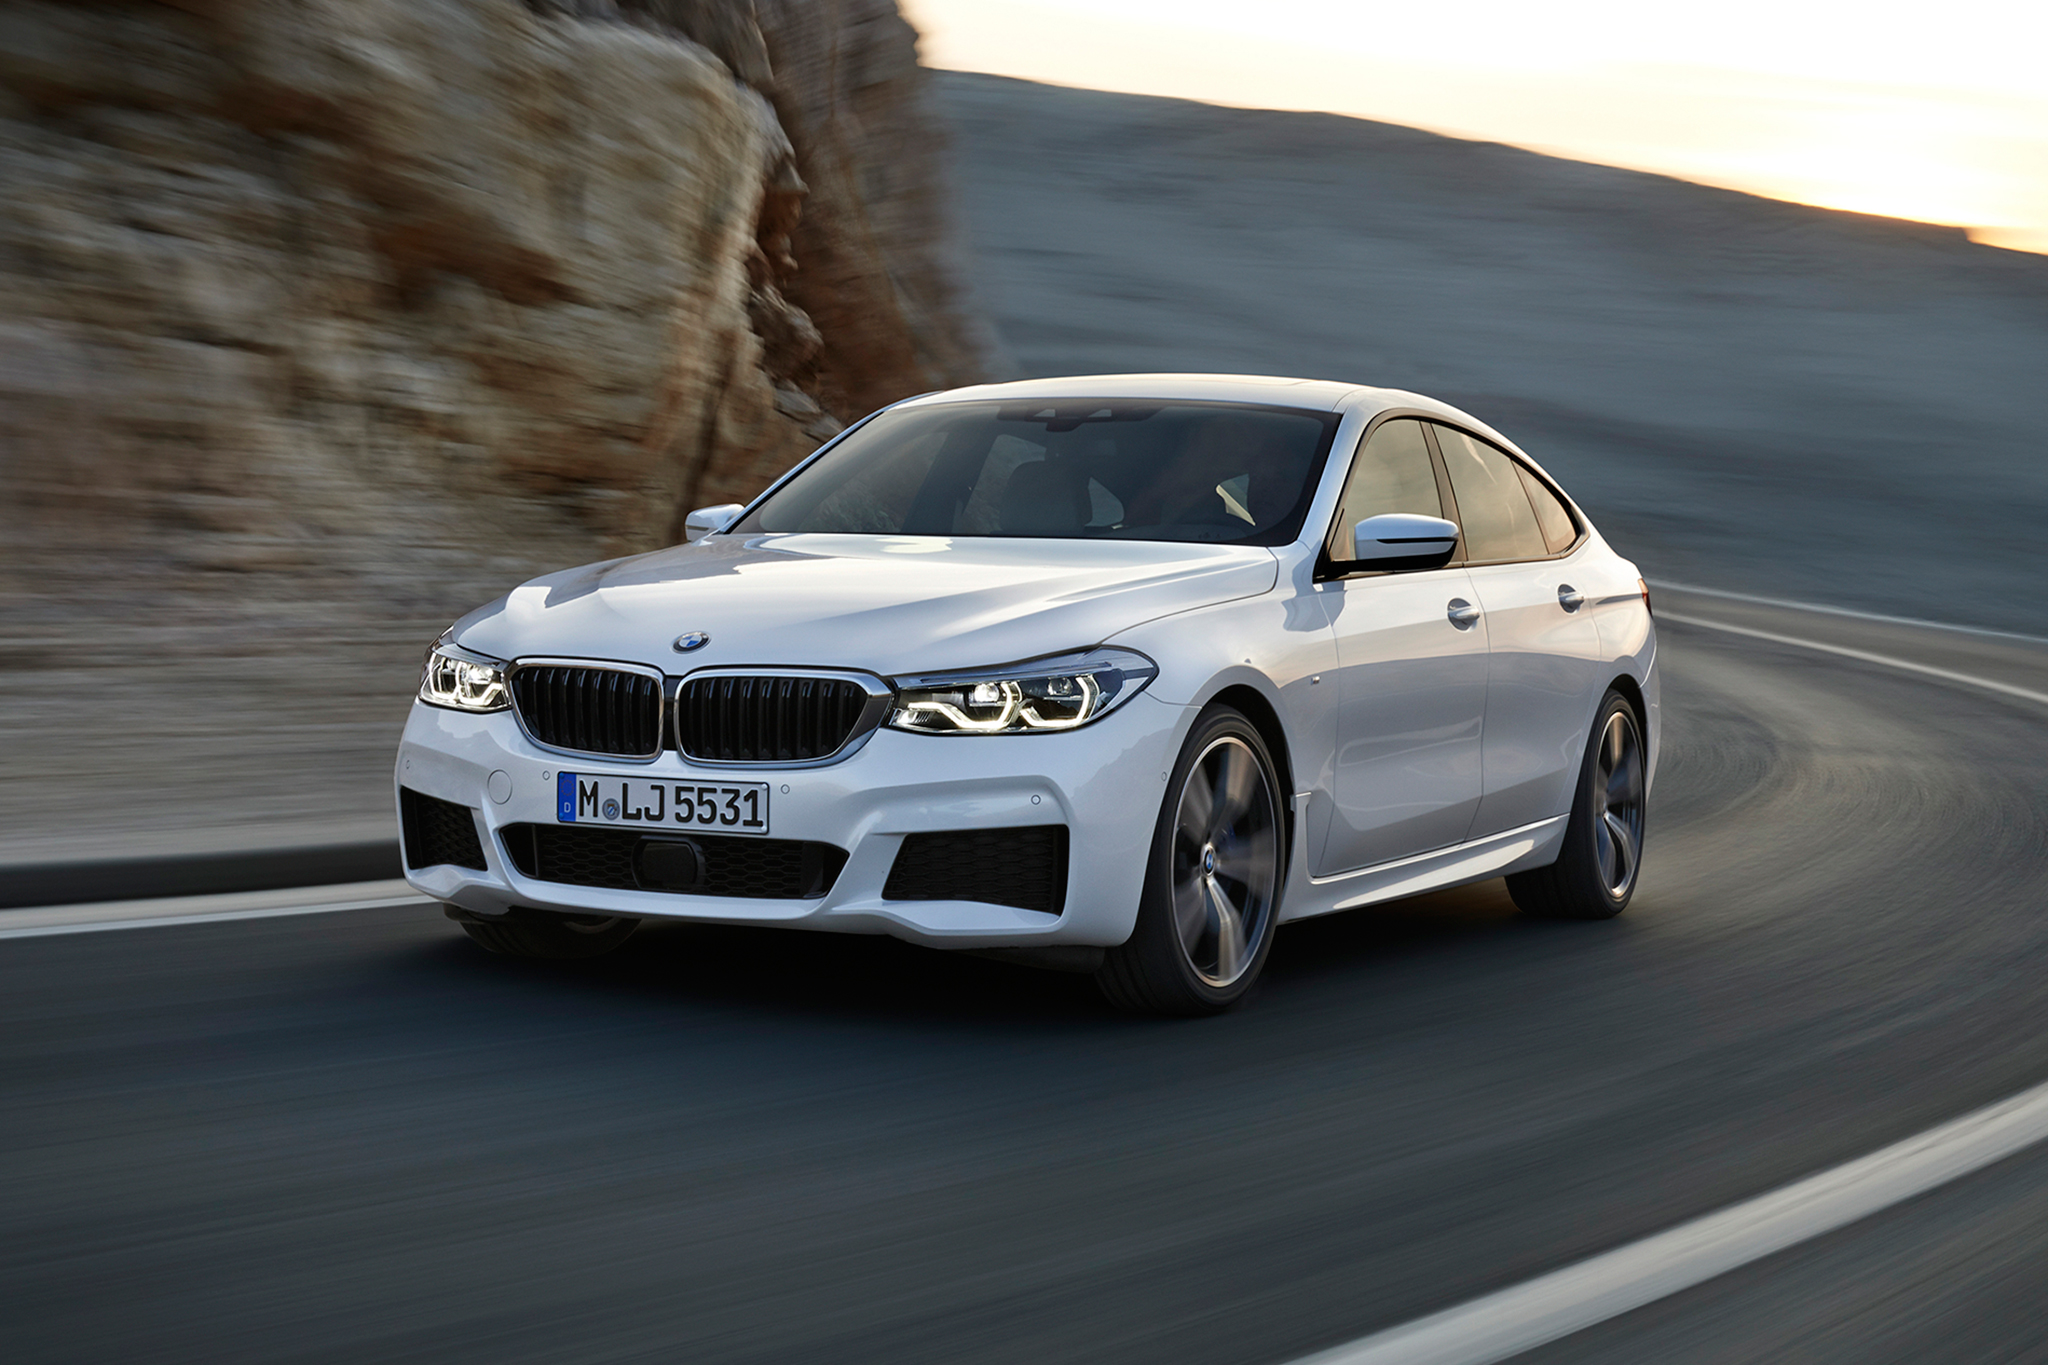 Despite Its Near Identical Size The 4 409 Lb 2018 640i Gt Weighs 221 Lbs Less Than All Wheel Drive 535i And A Whopping 531